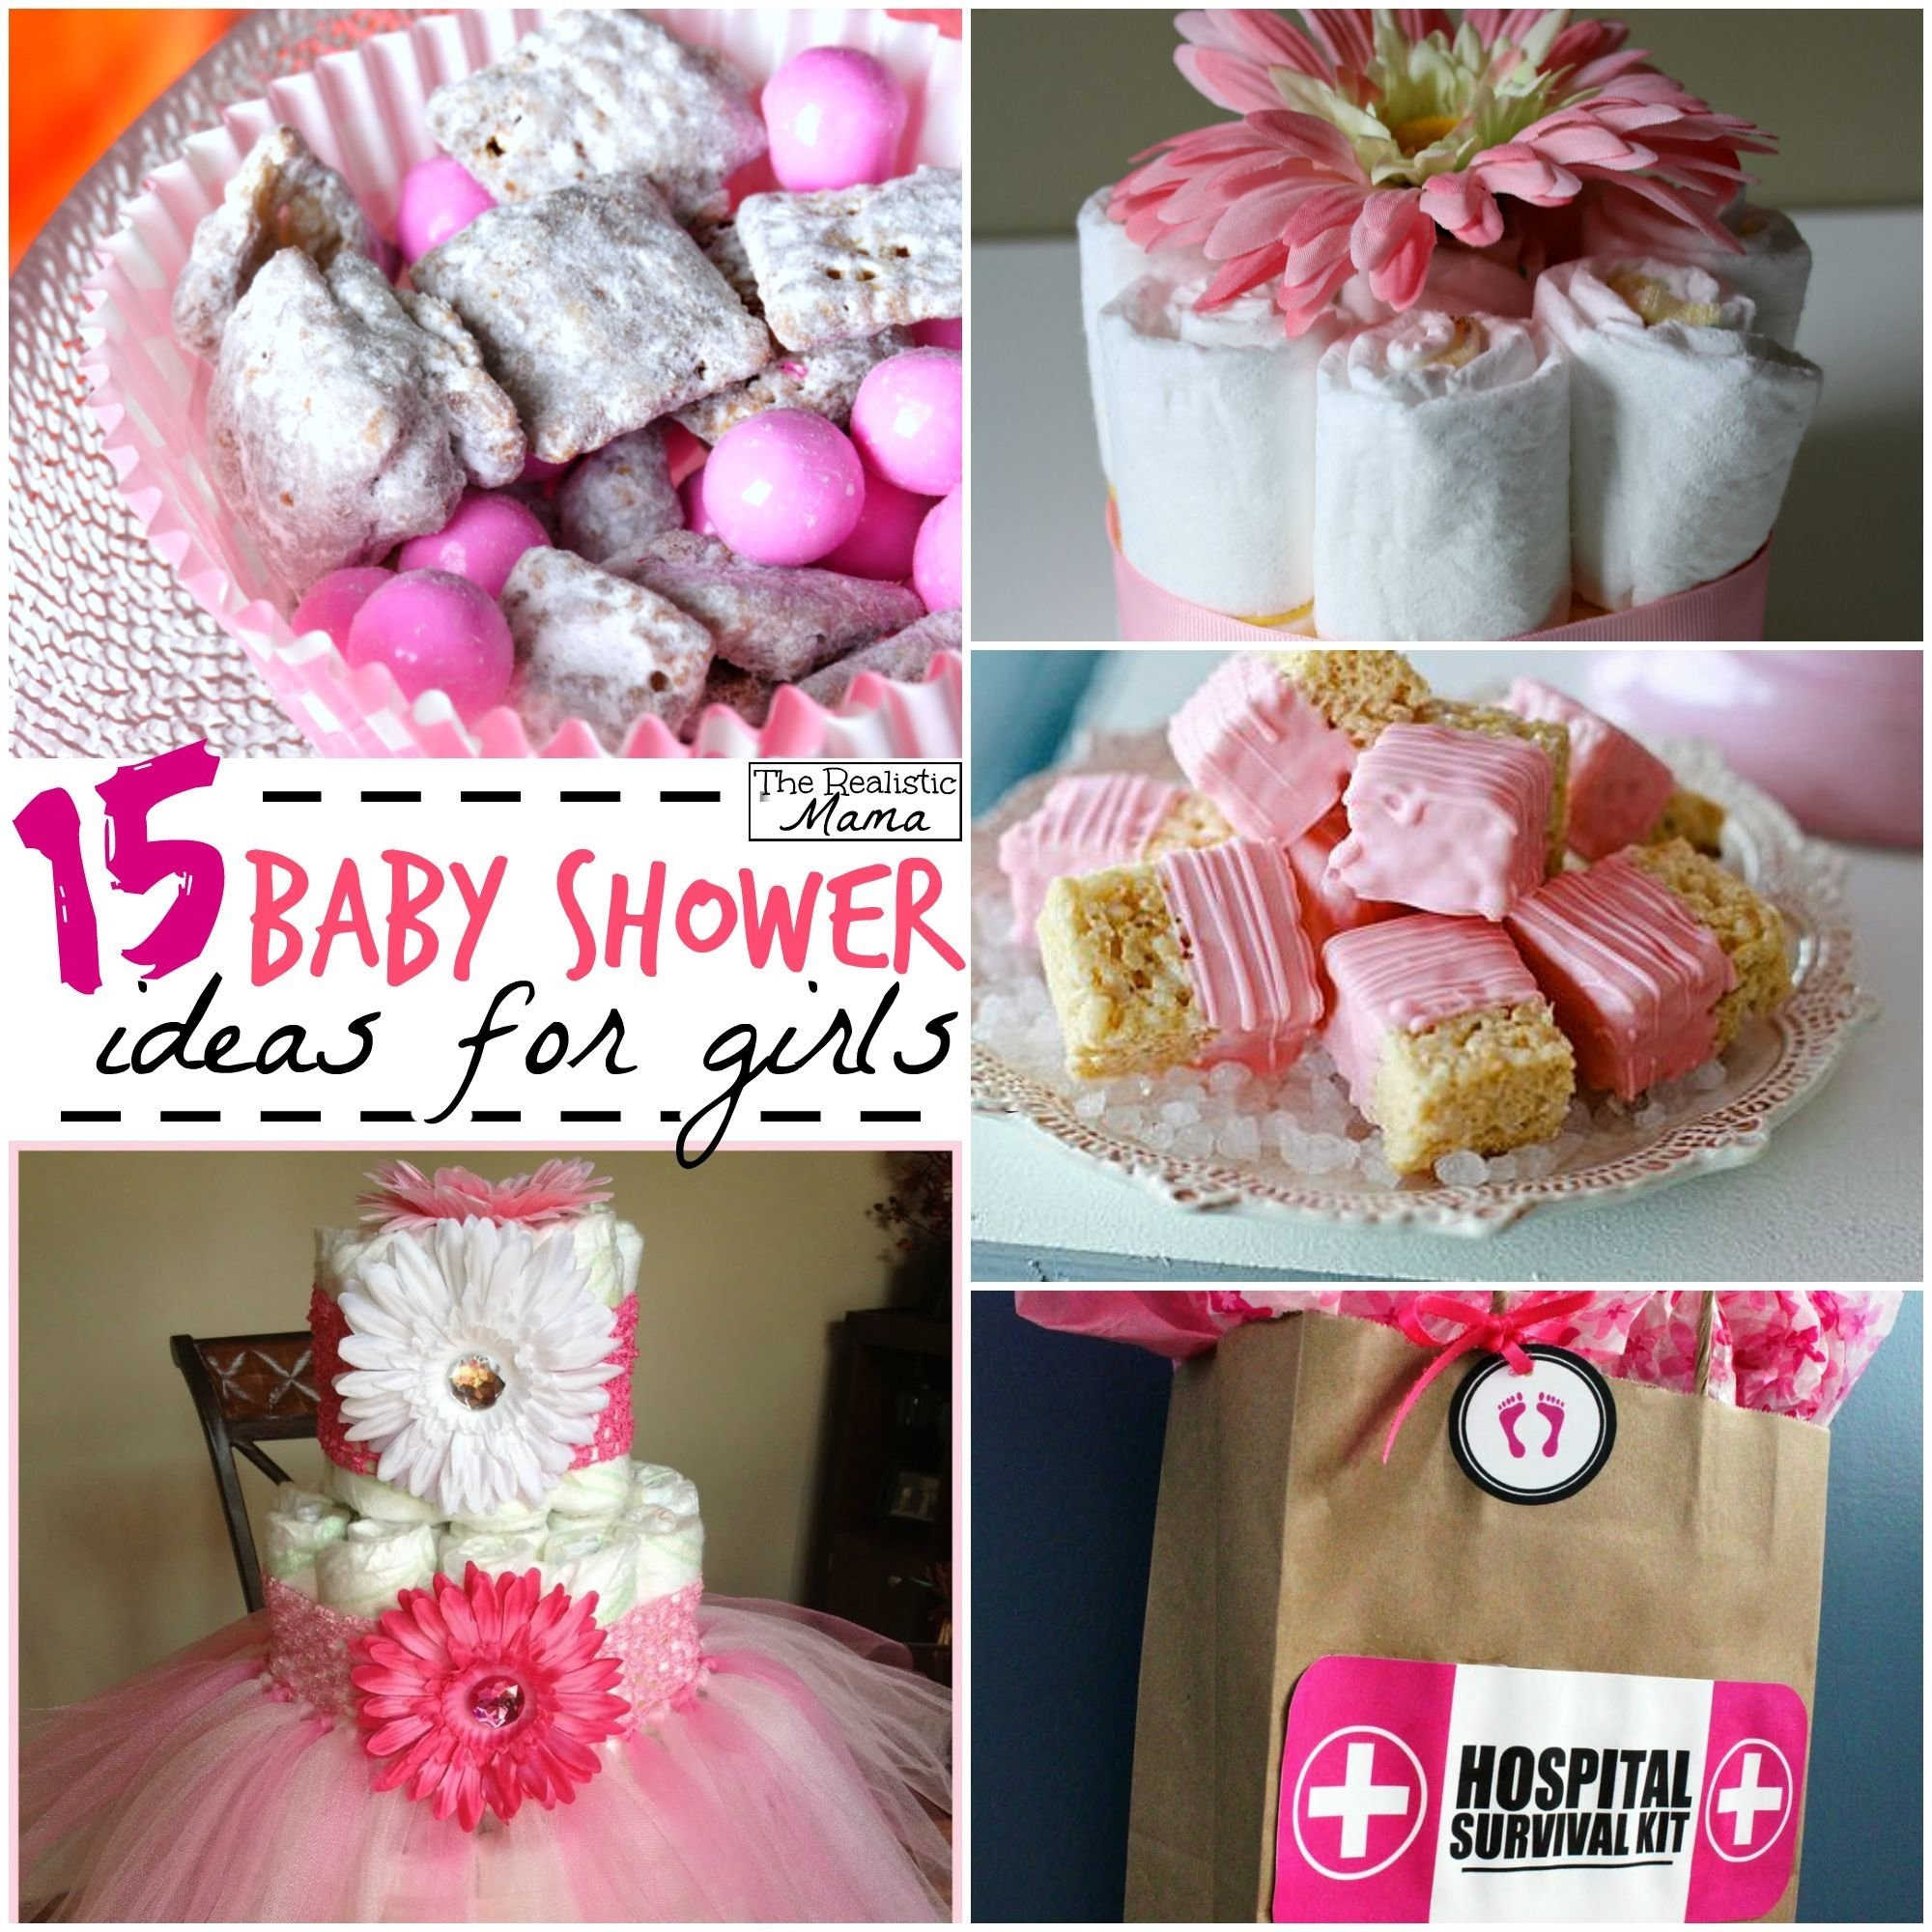 10 Stunning Baby Shower For A Girl Ideas 15 baby shower ideas for girls the realistic mama 18 2020